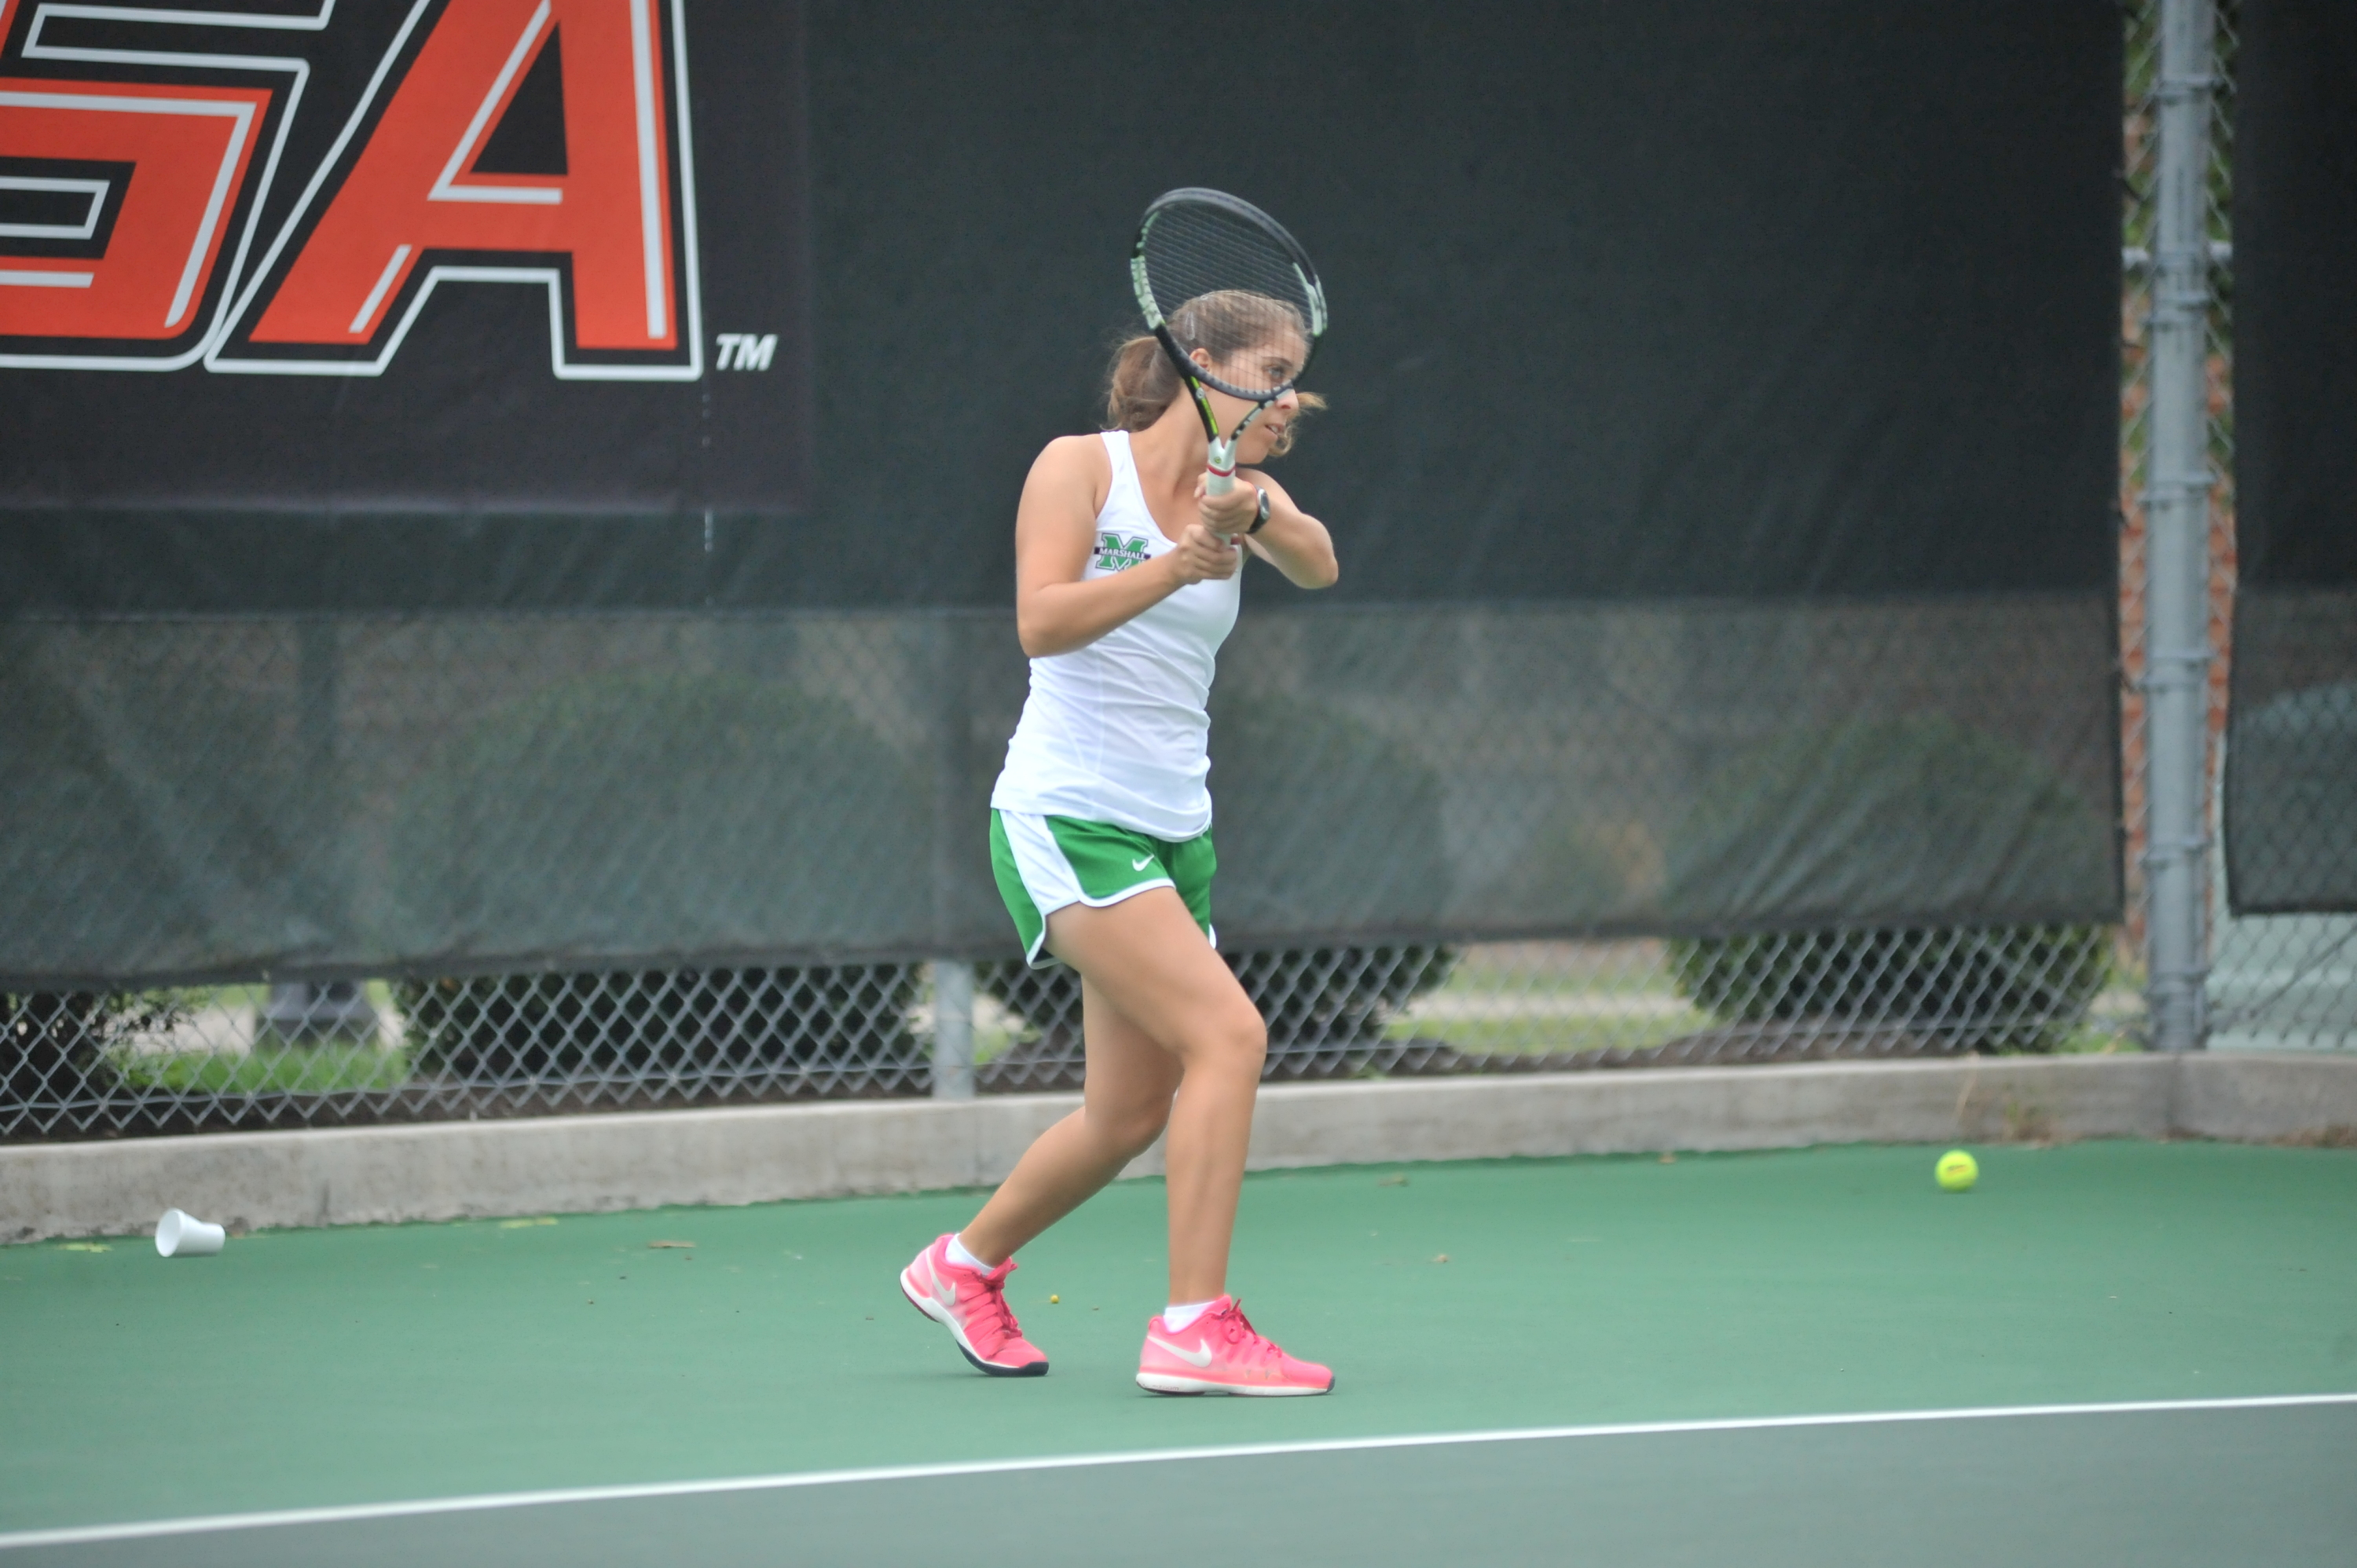 Rachael Morales won a singles match and a doubles match Sunday.